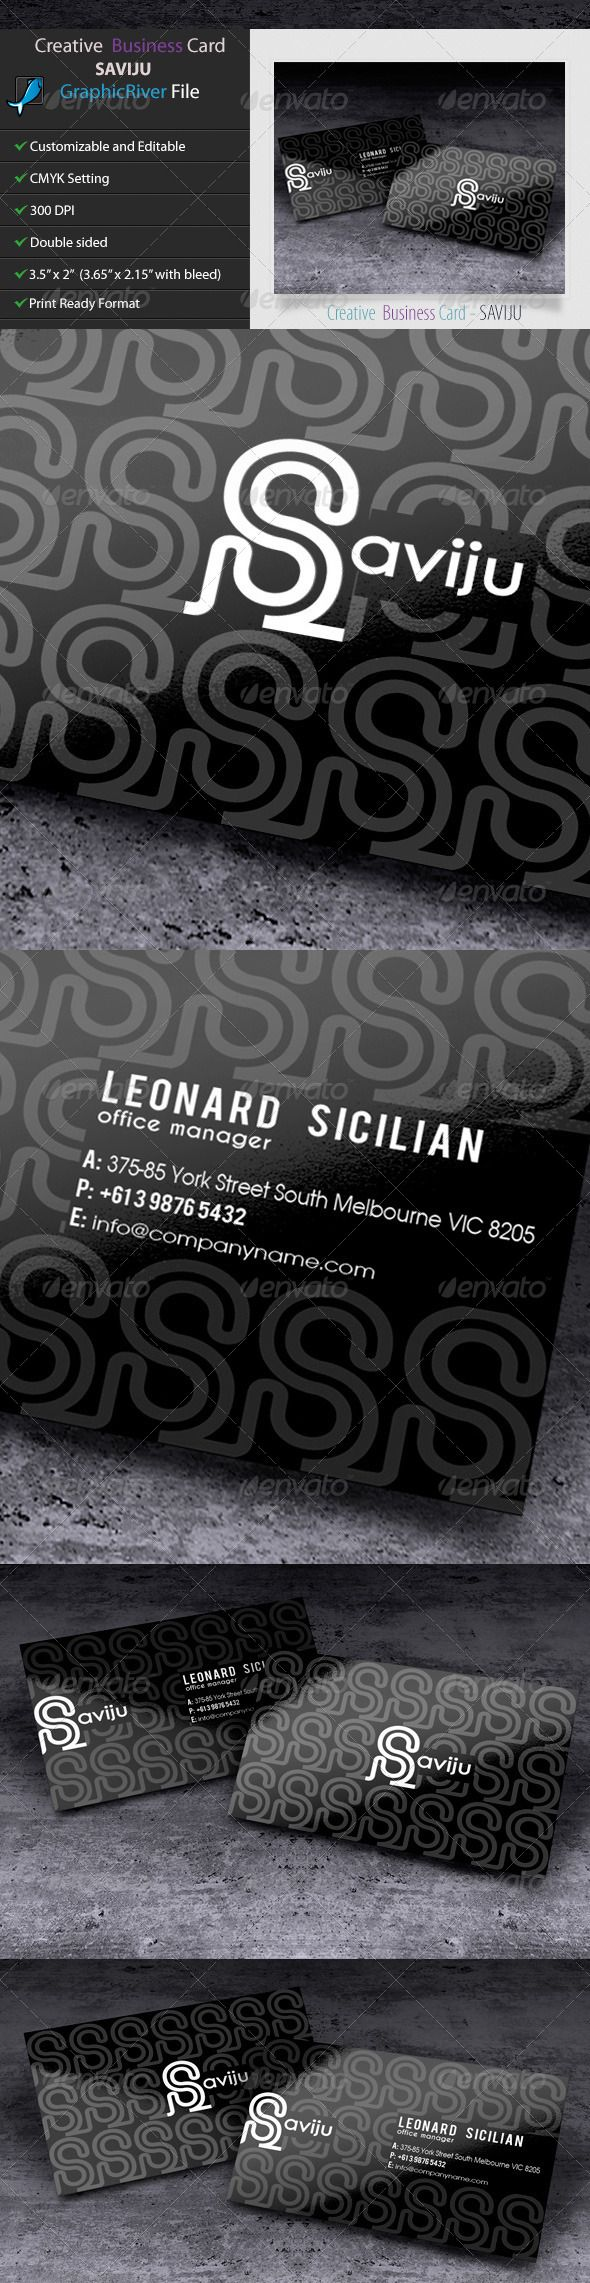 Creative Business Card - SAVIJU2